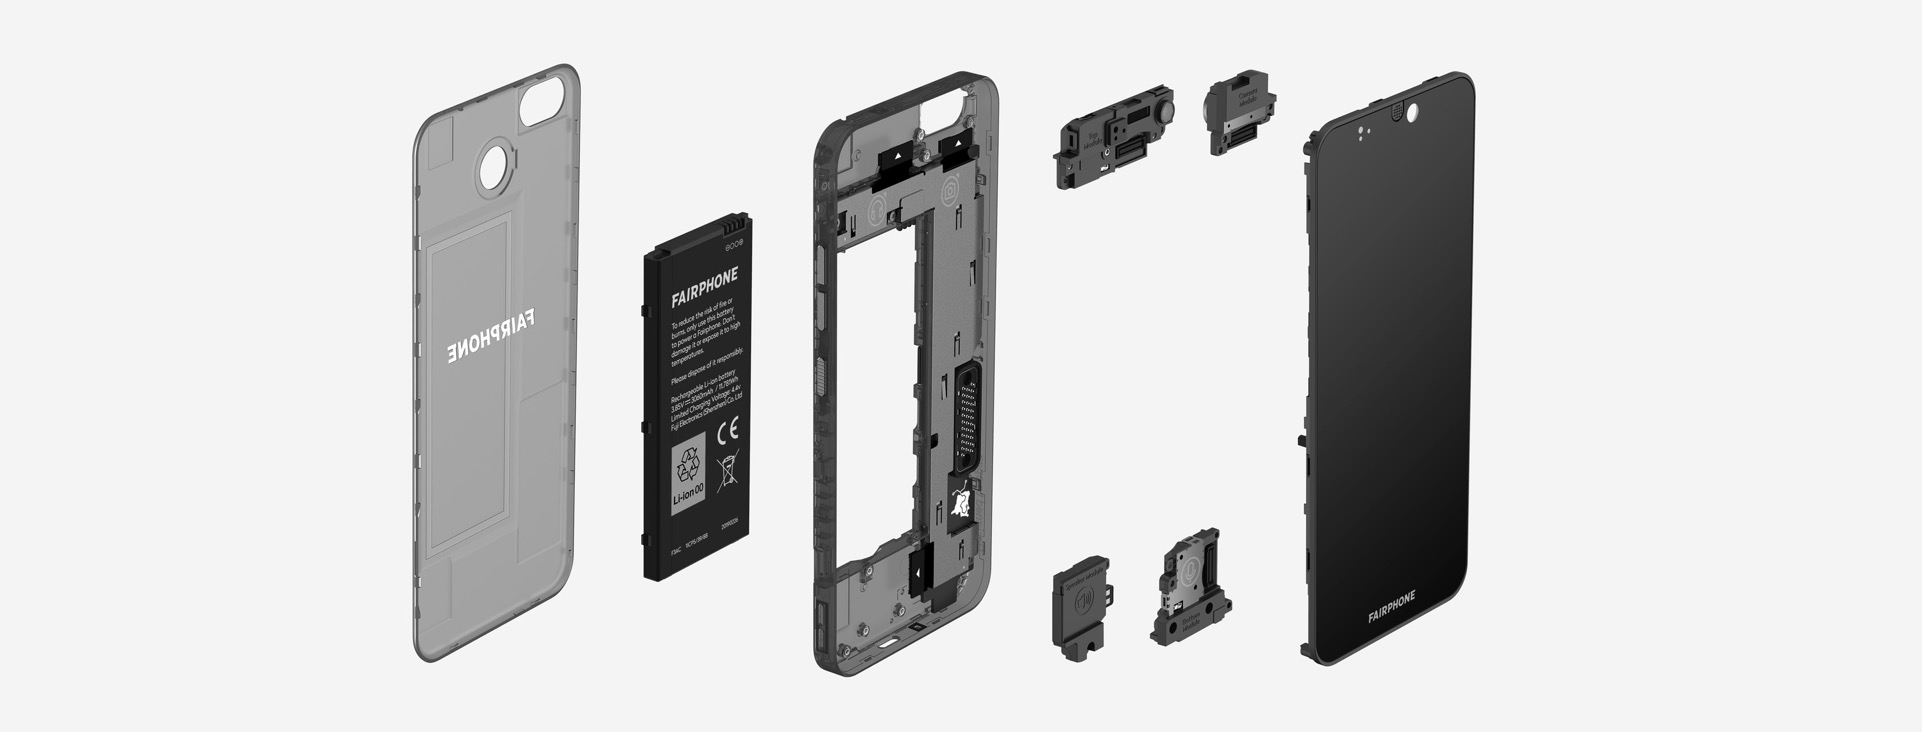 The Fairphone 3 Is Here, and It's Not the Only Sustainable Phone On the Way